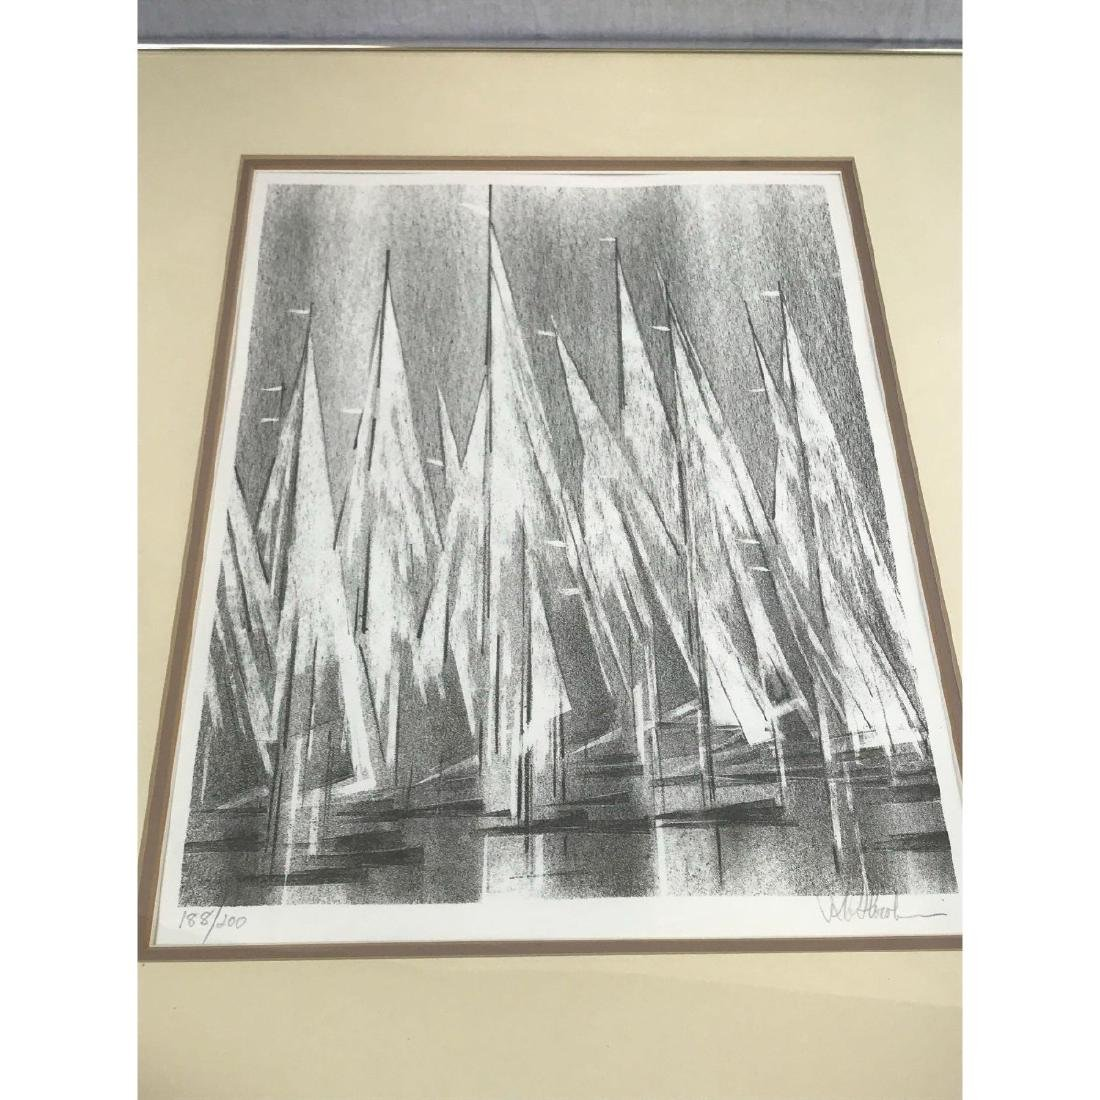 A Stunning Monotone Print of Boat Sails, Signed - 8